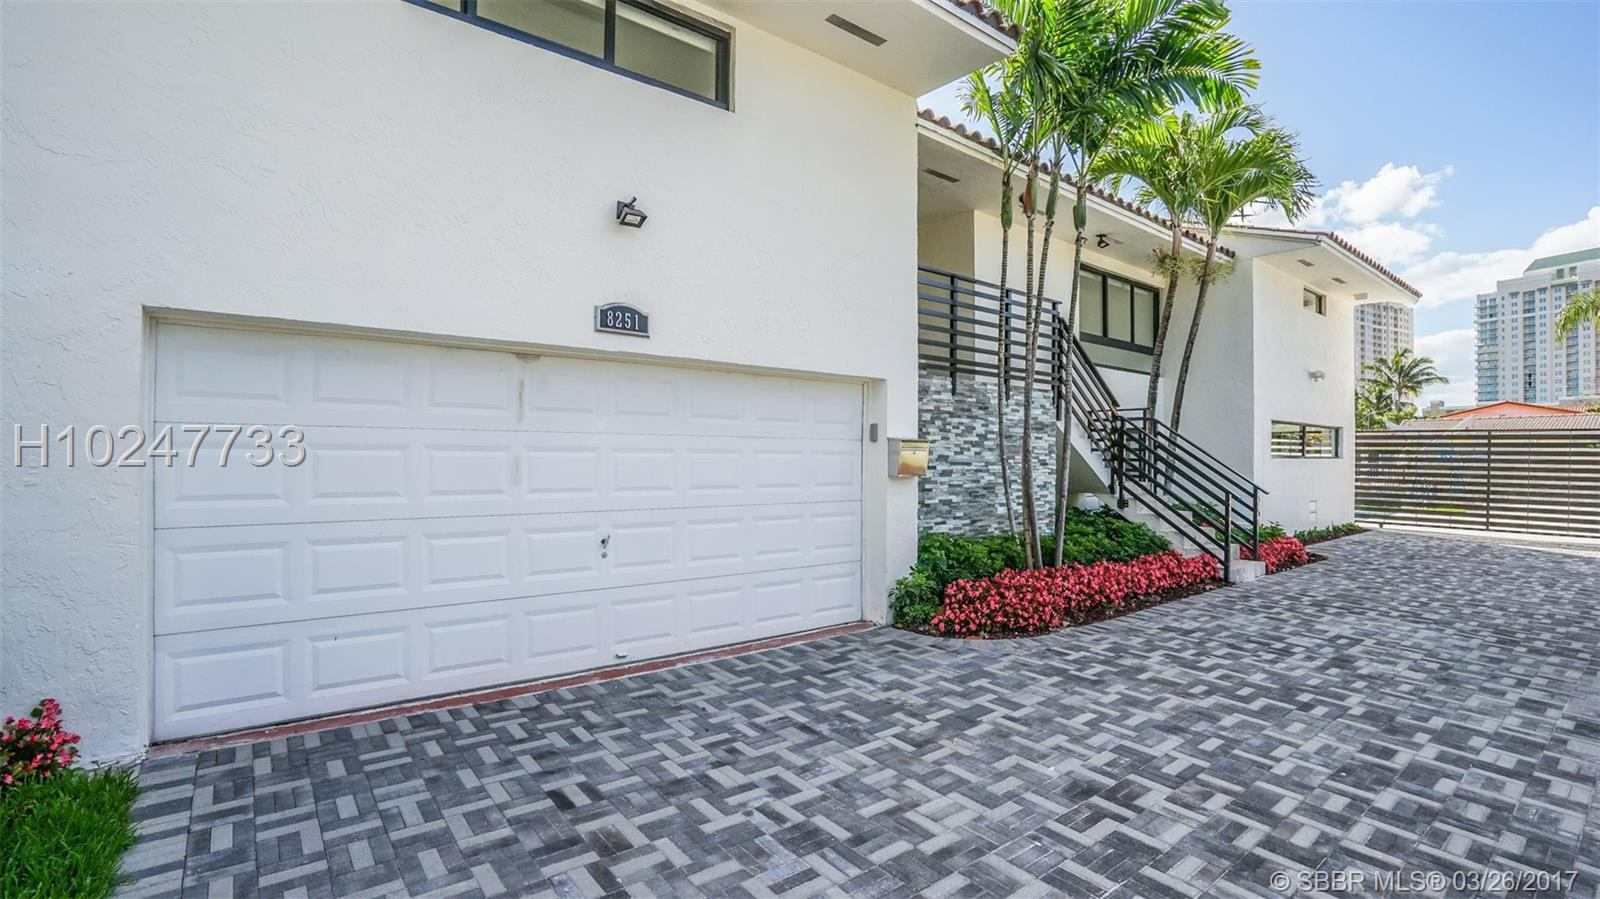 8251 NE 12th Ave, Miami, FL 33138